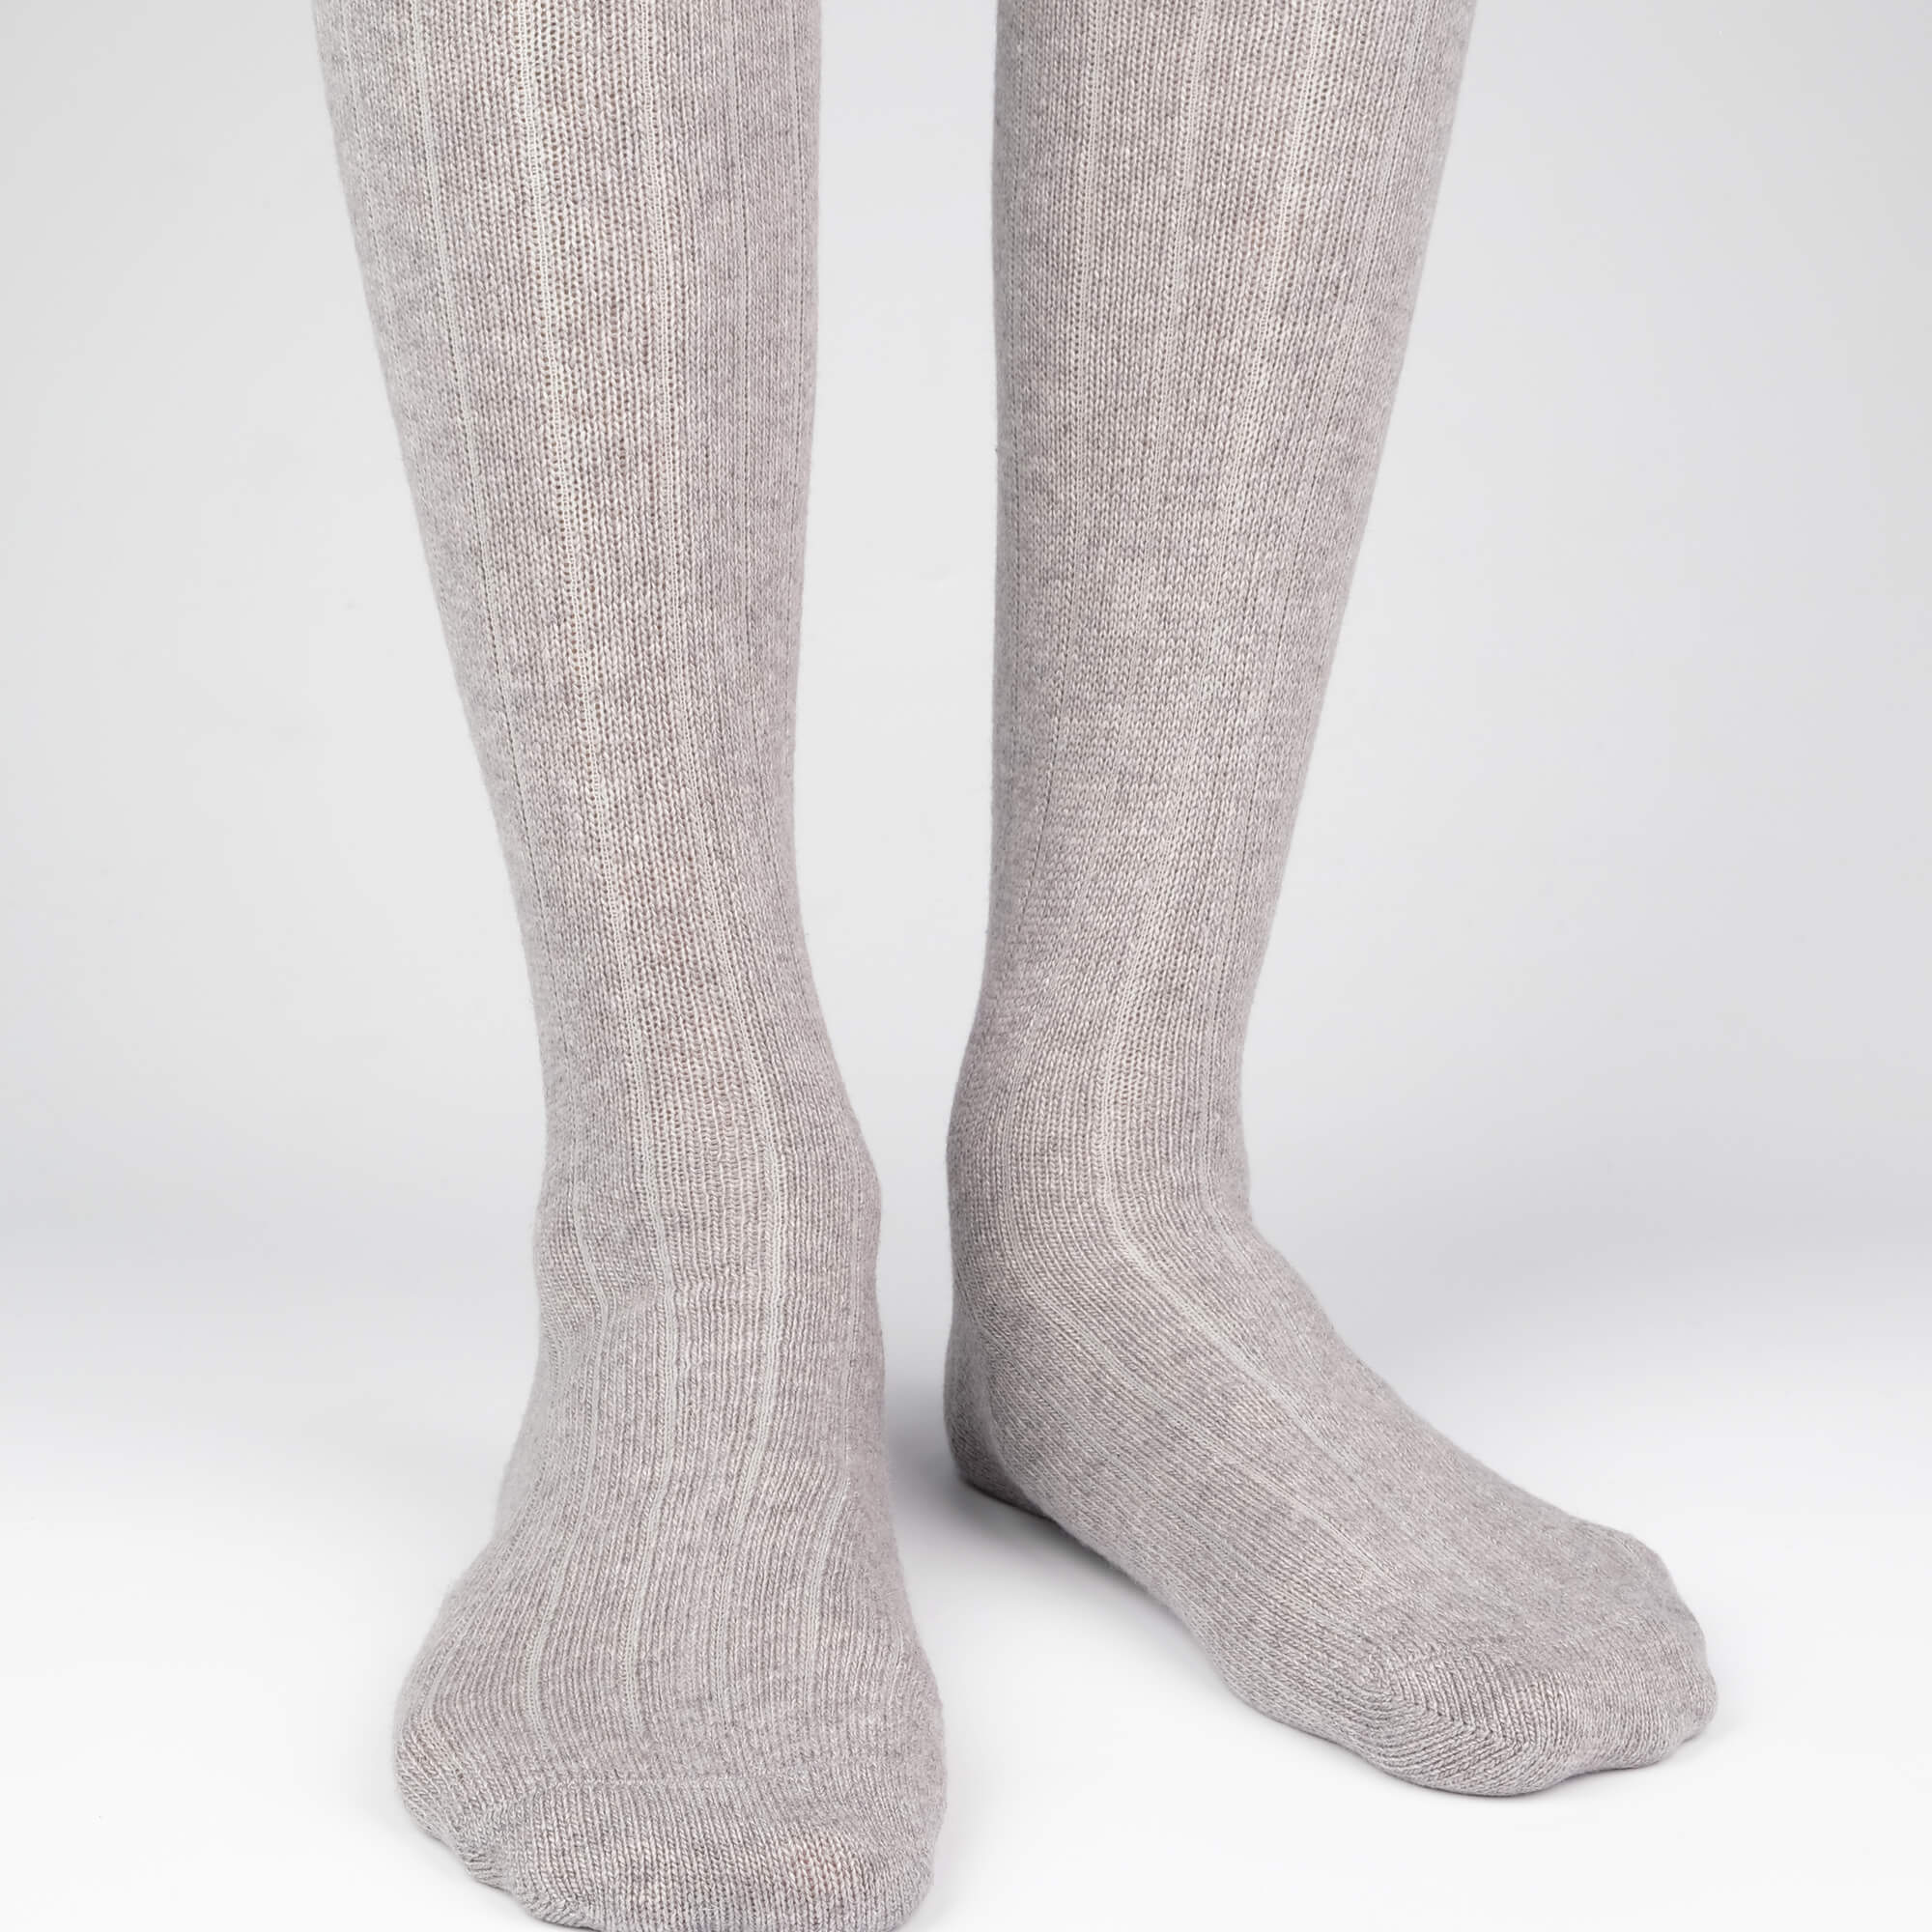 Mens Socks - Cashmere Knee High Ribbed - Grey⎪Etiquette Clothiers